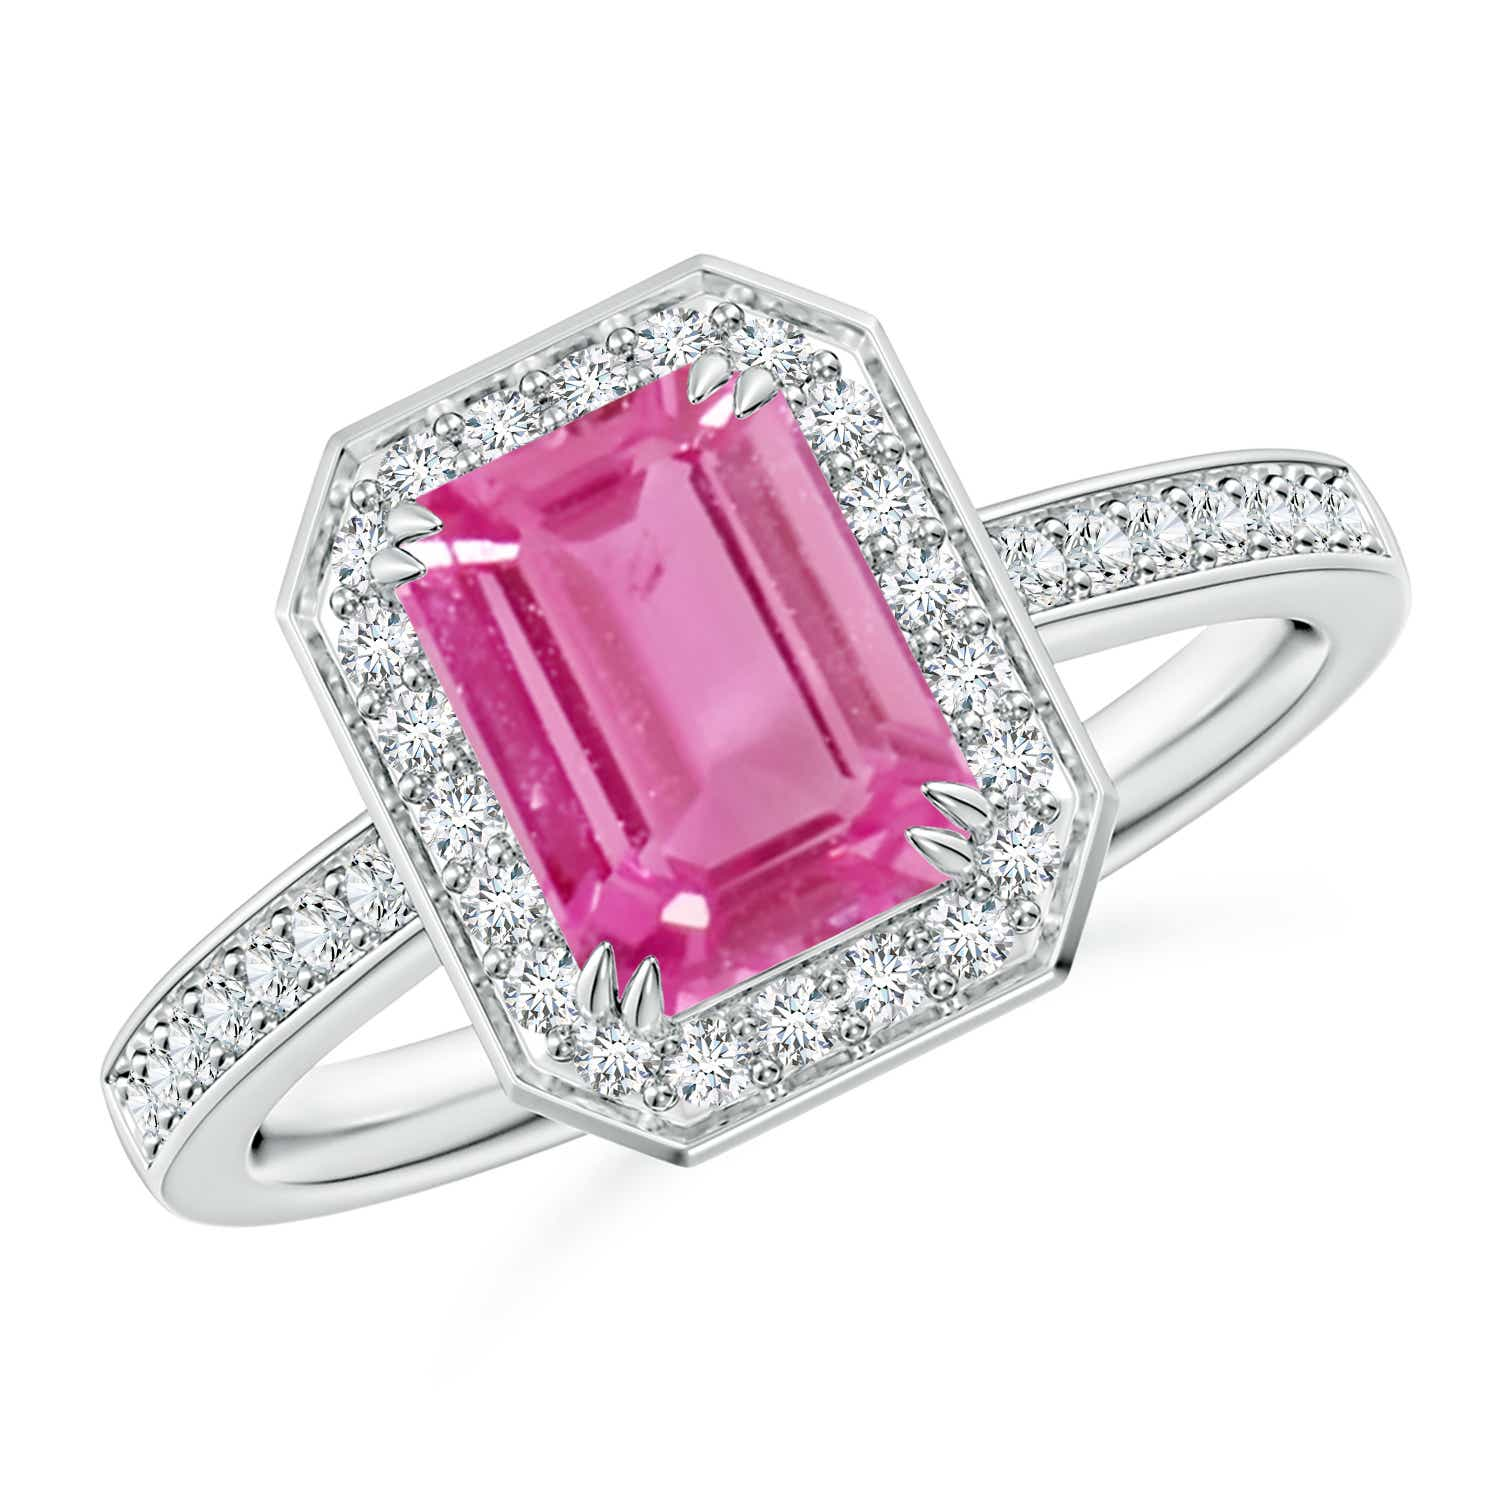 Emerald-Cut Pink Sapphire Engagement Ring with Diamond Halo | Angara